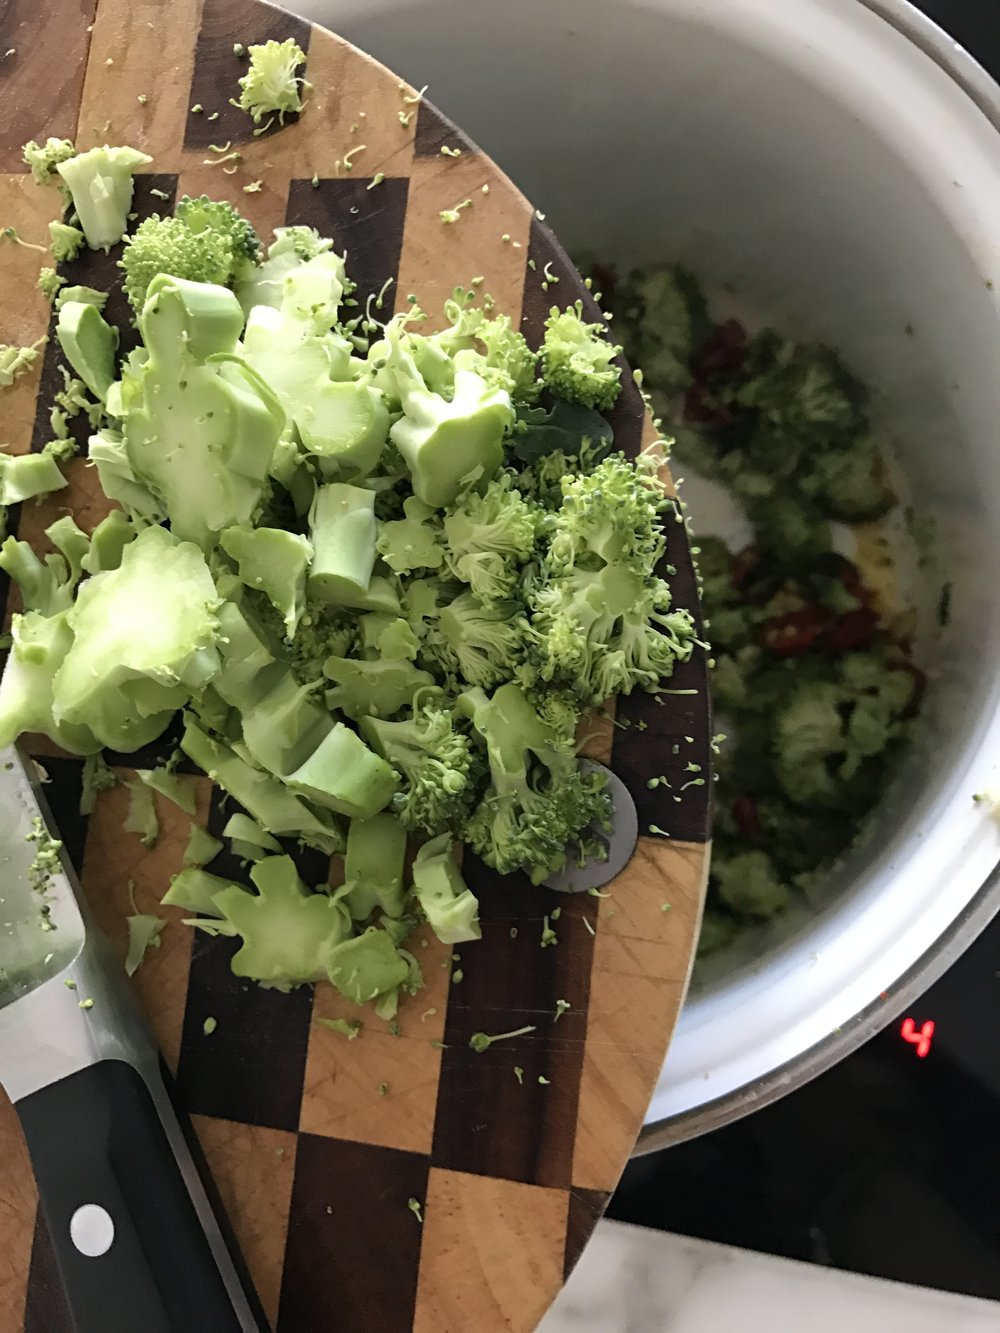 Chop up the broccoli